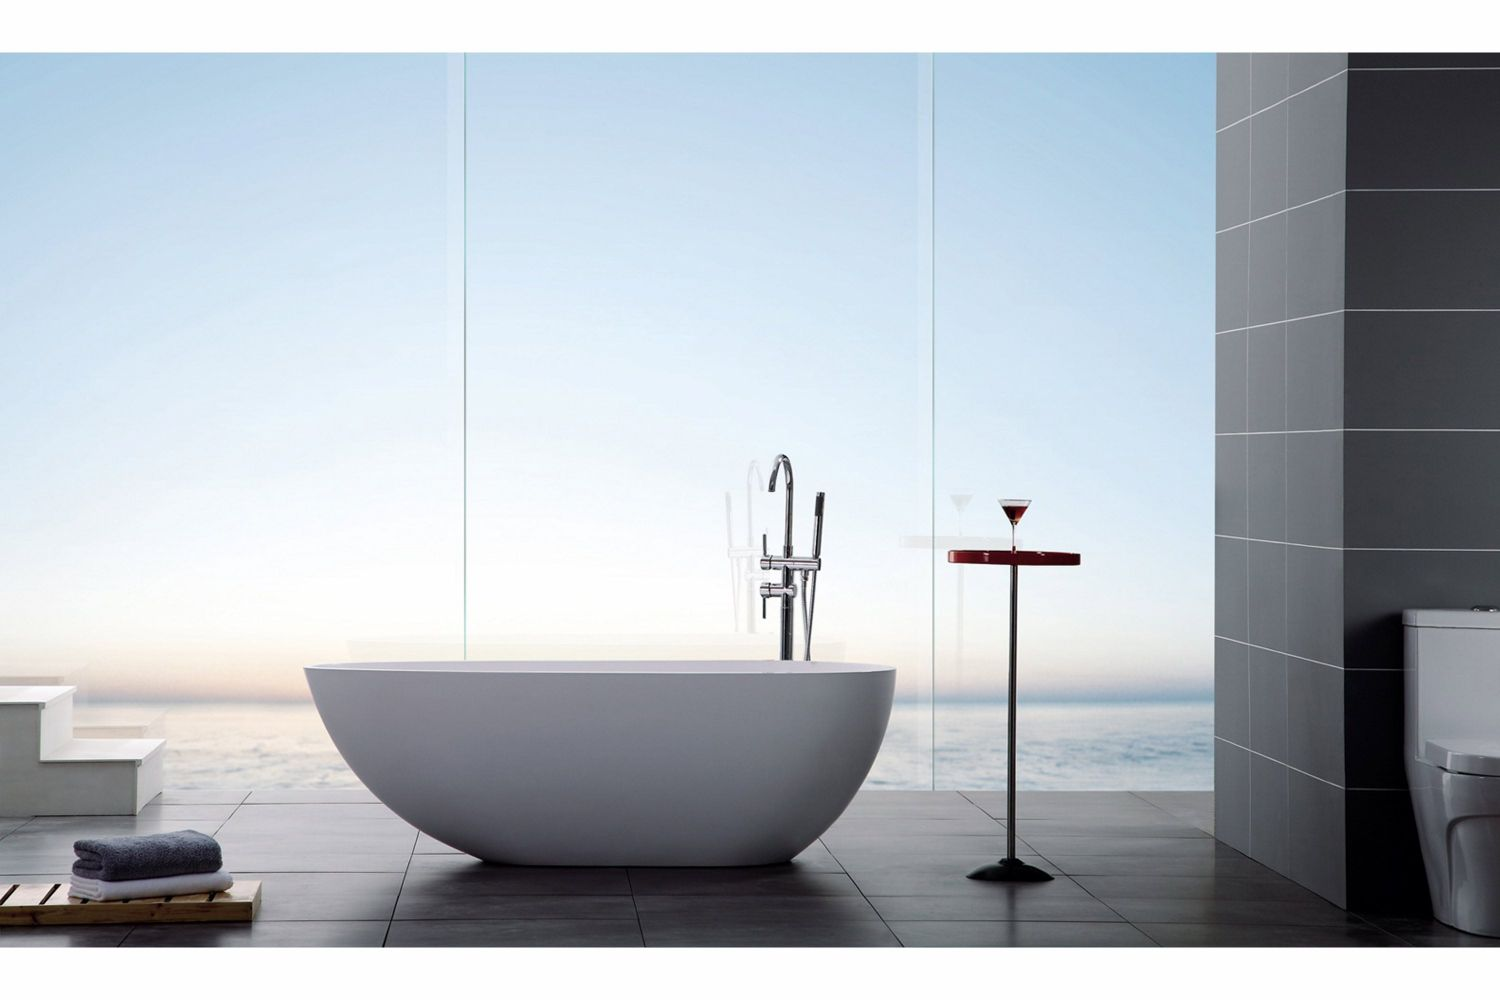 Kylpyamme Bathlife Ideal Design valumarmori 150 cm